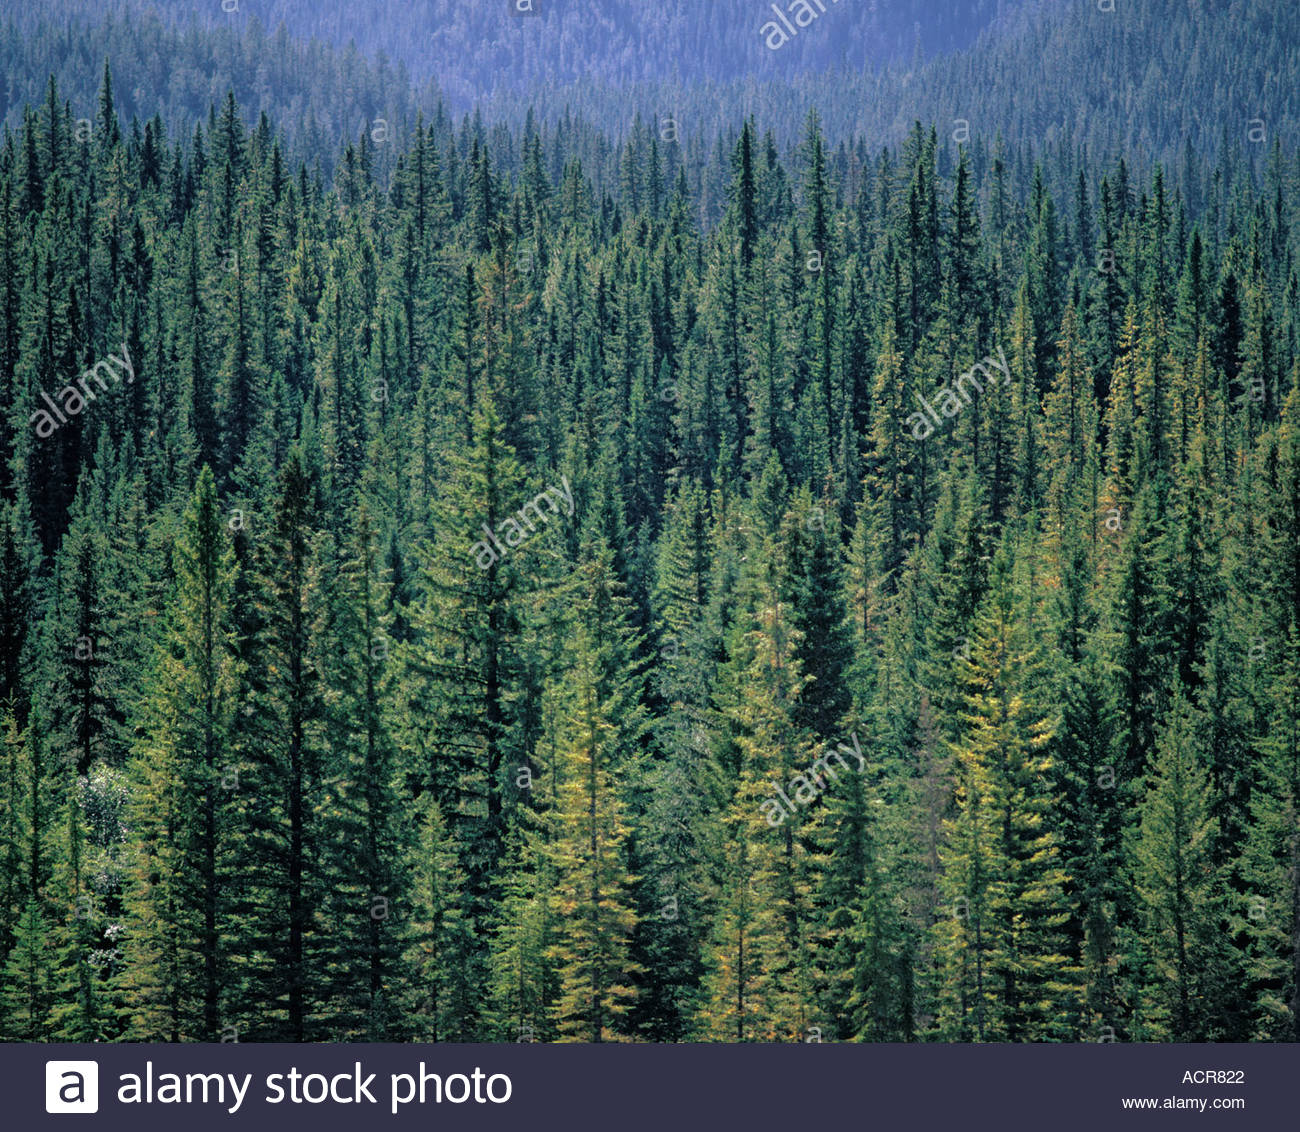 coniferous-alpine-forest-in-banff-nation